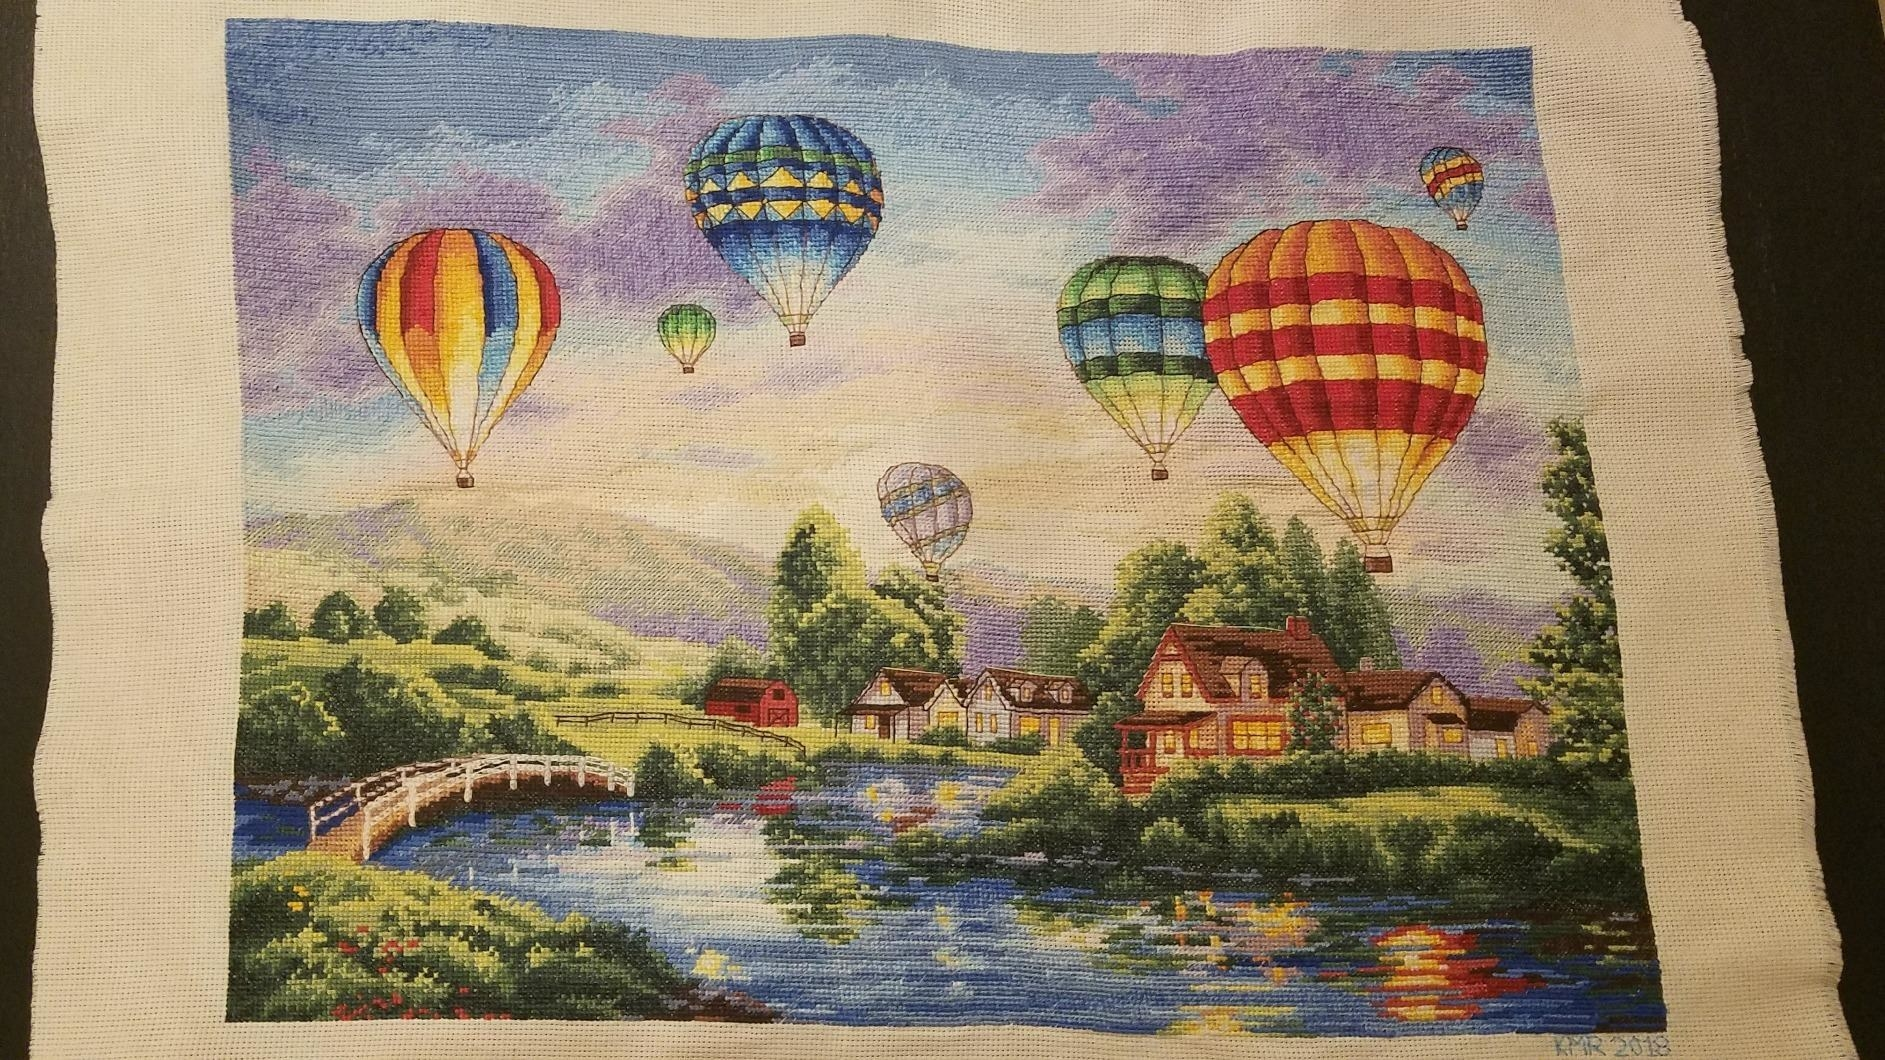 Reviewer photo of the completed cross stitch kit, which features a hot air balloons on a  picturesque background